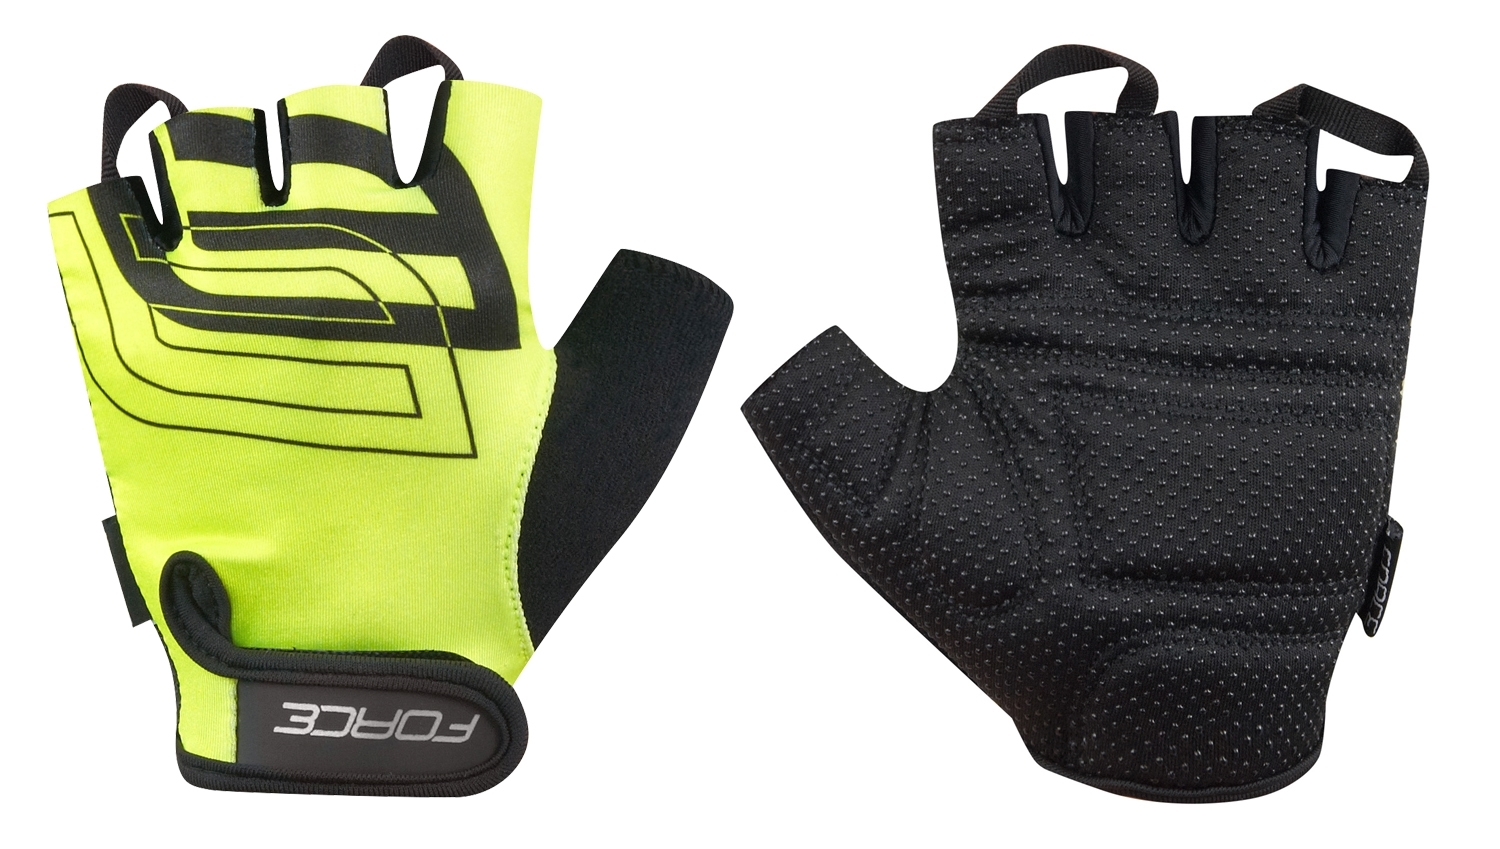 Rukavice FORCE SPORT, fluo S